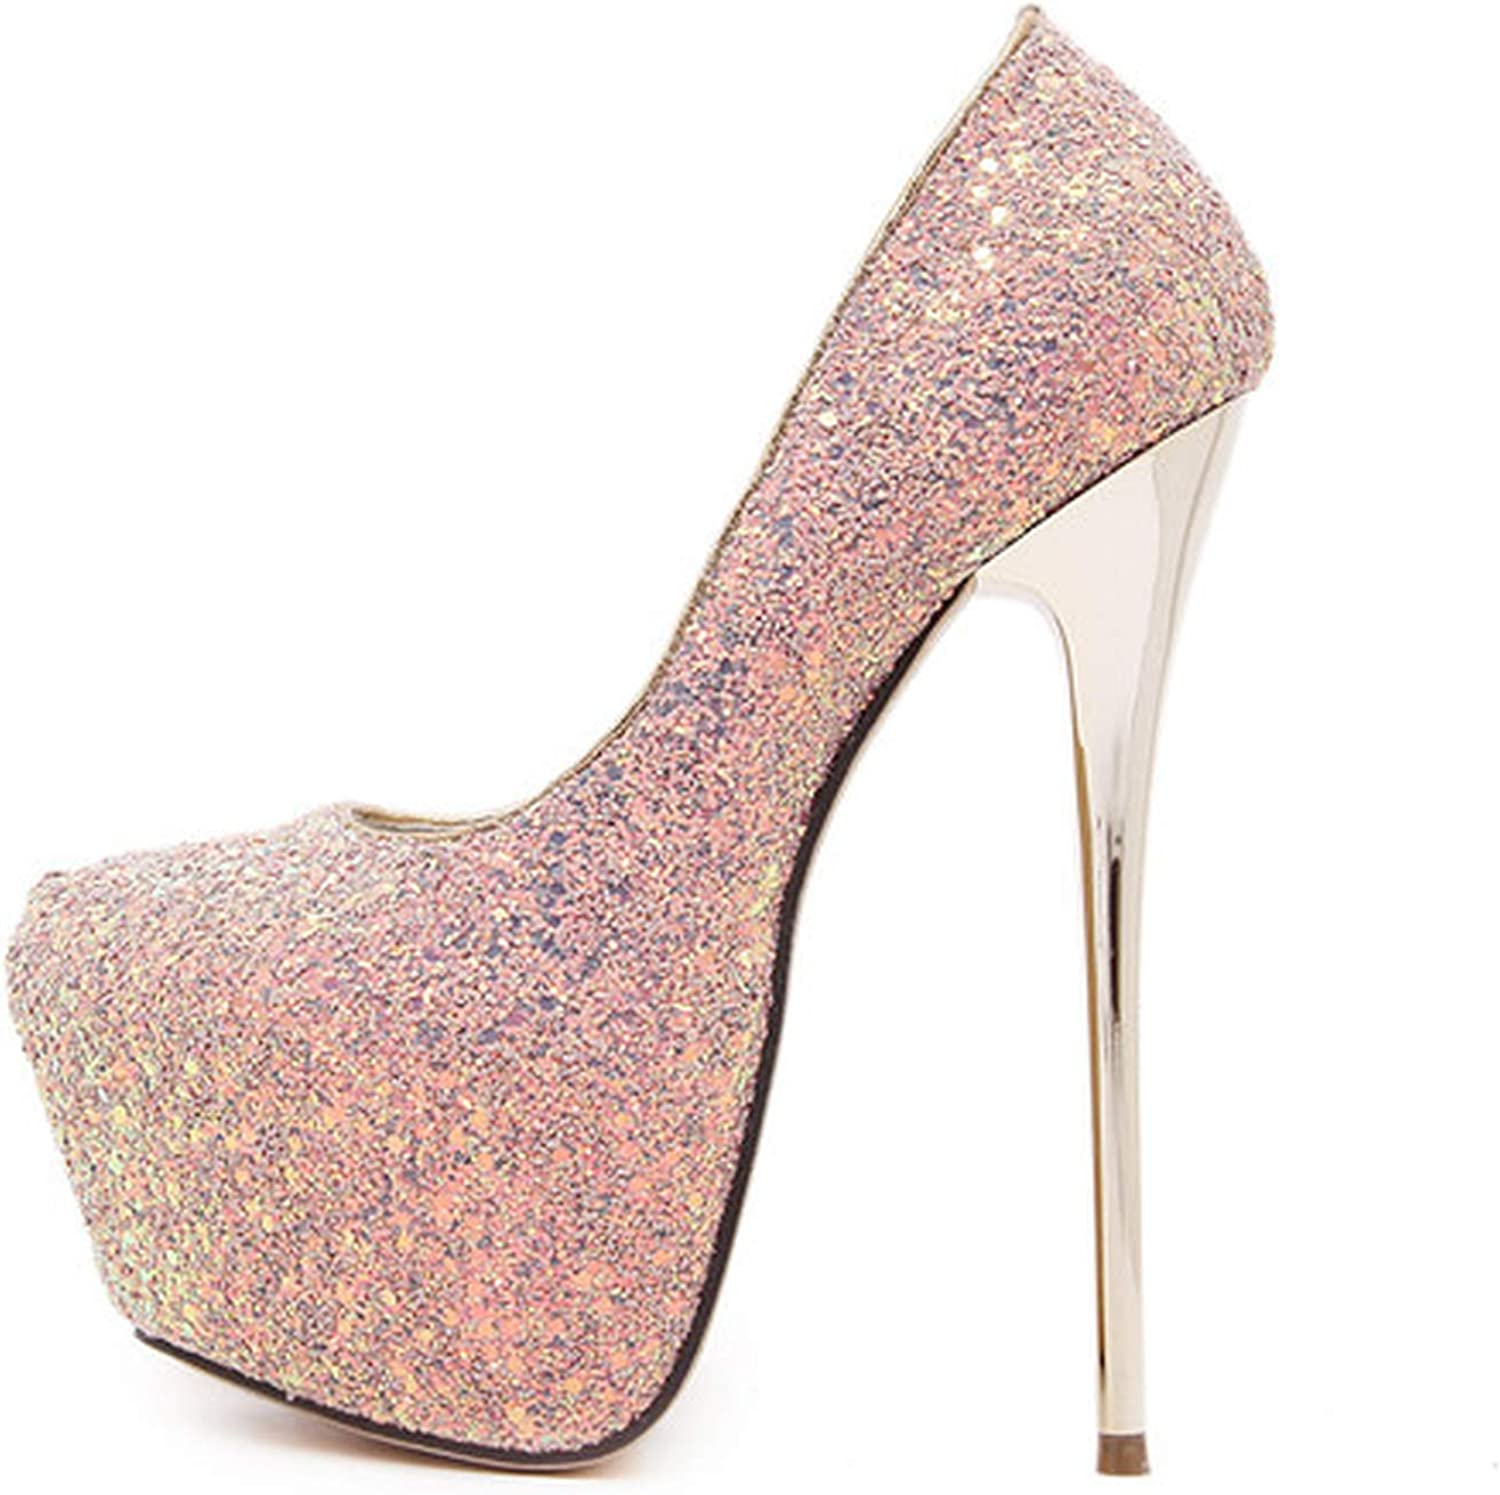 DATAIYANG Sexy Women High Heels New Platform Pumps Gladiator High Heels Wedding Party Heels Sequined Plus Size